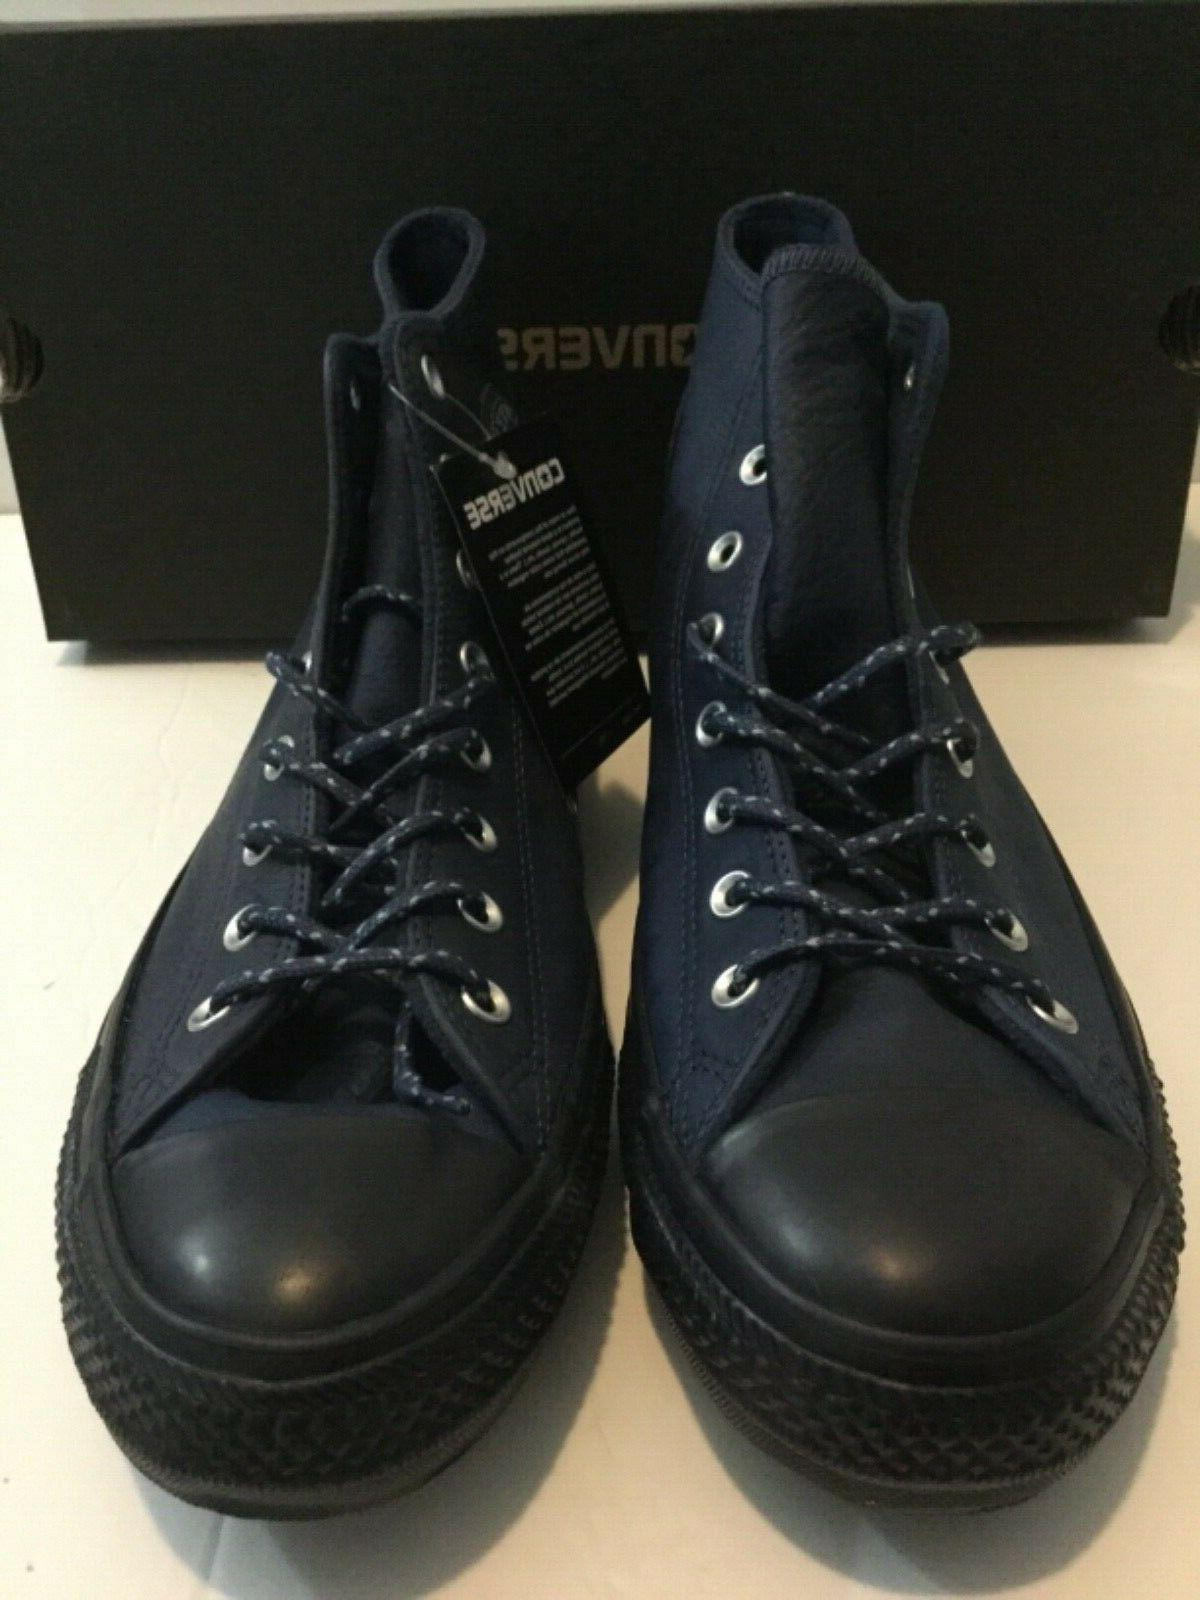 Converse CTAS Navy Leather Mens Size 11.5 New